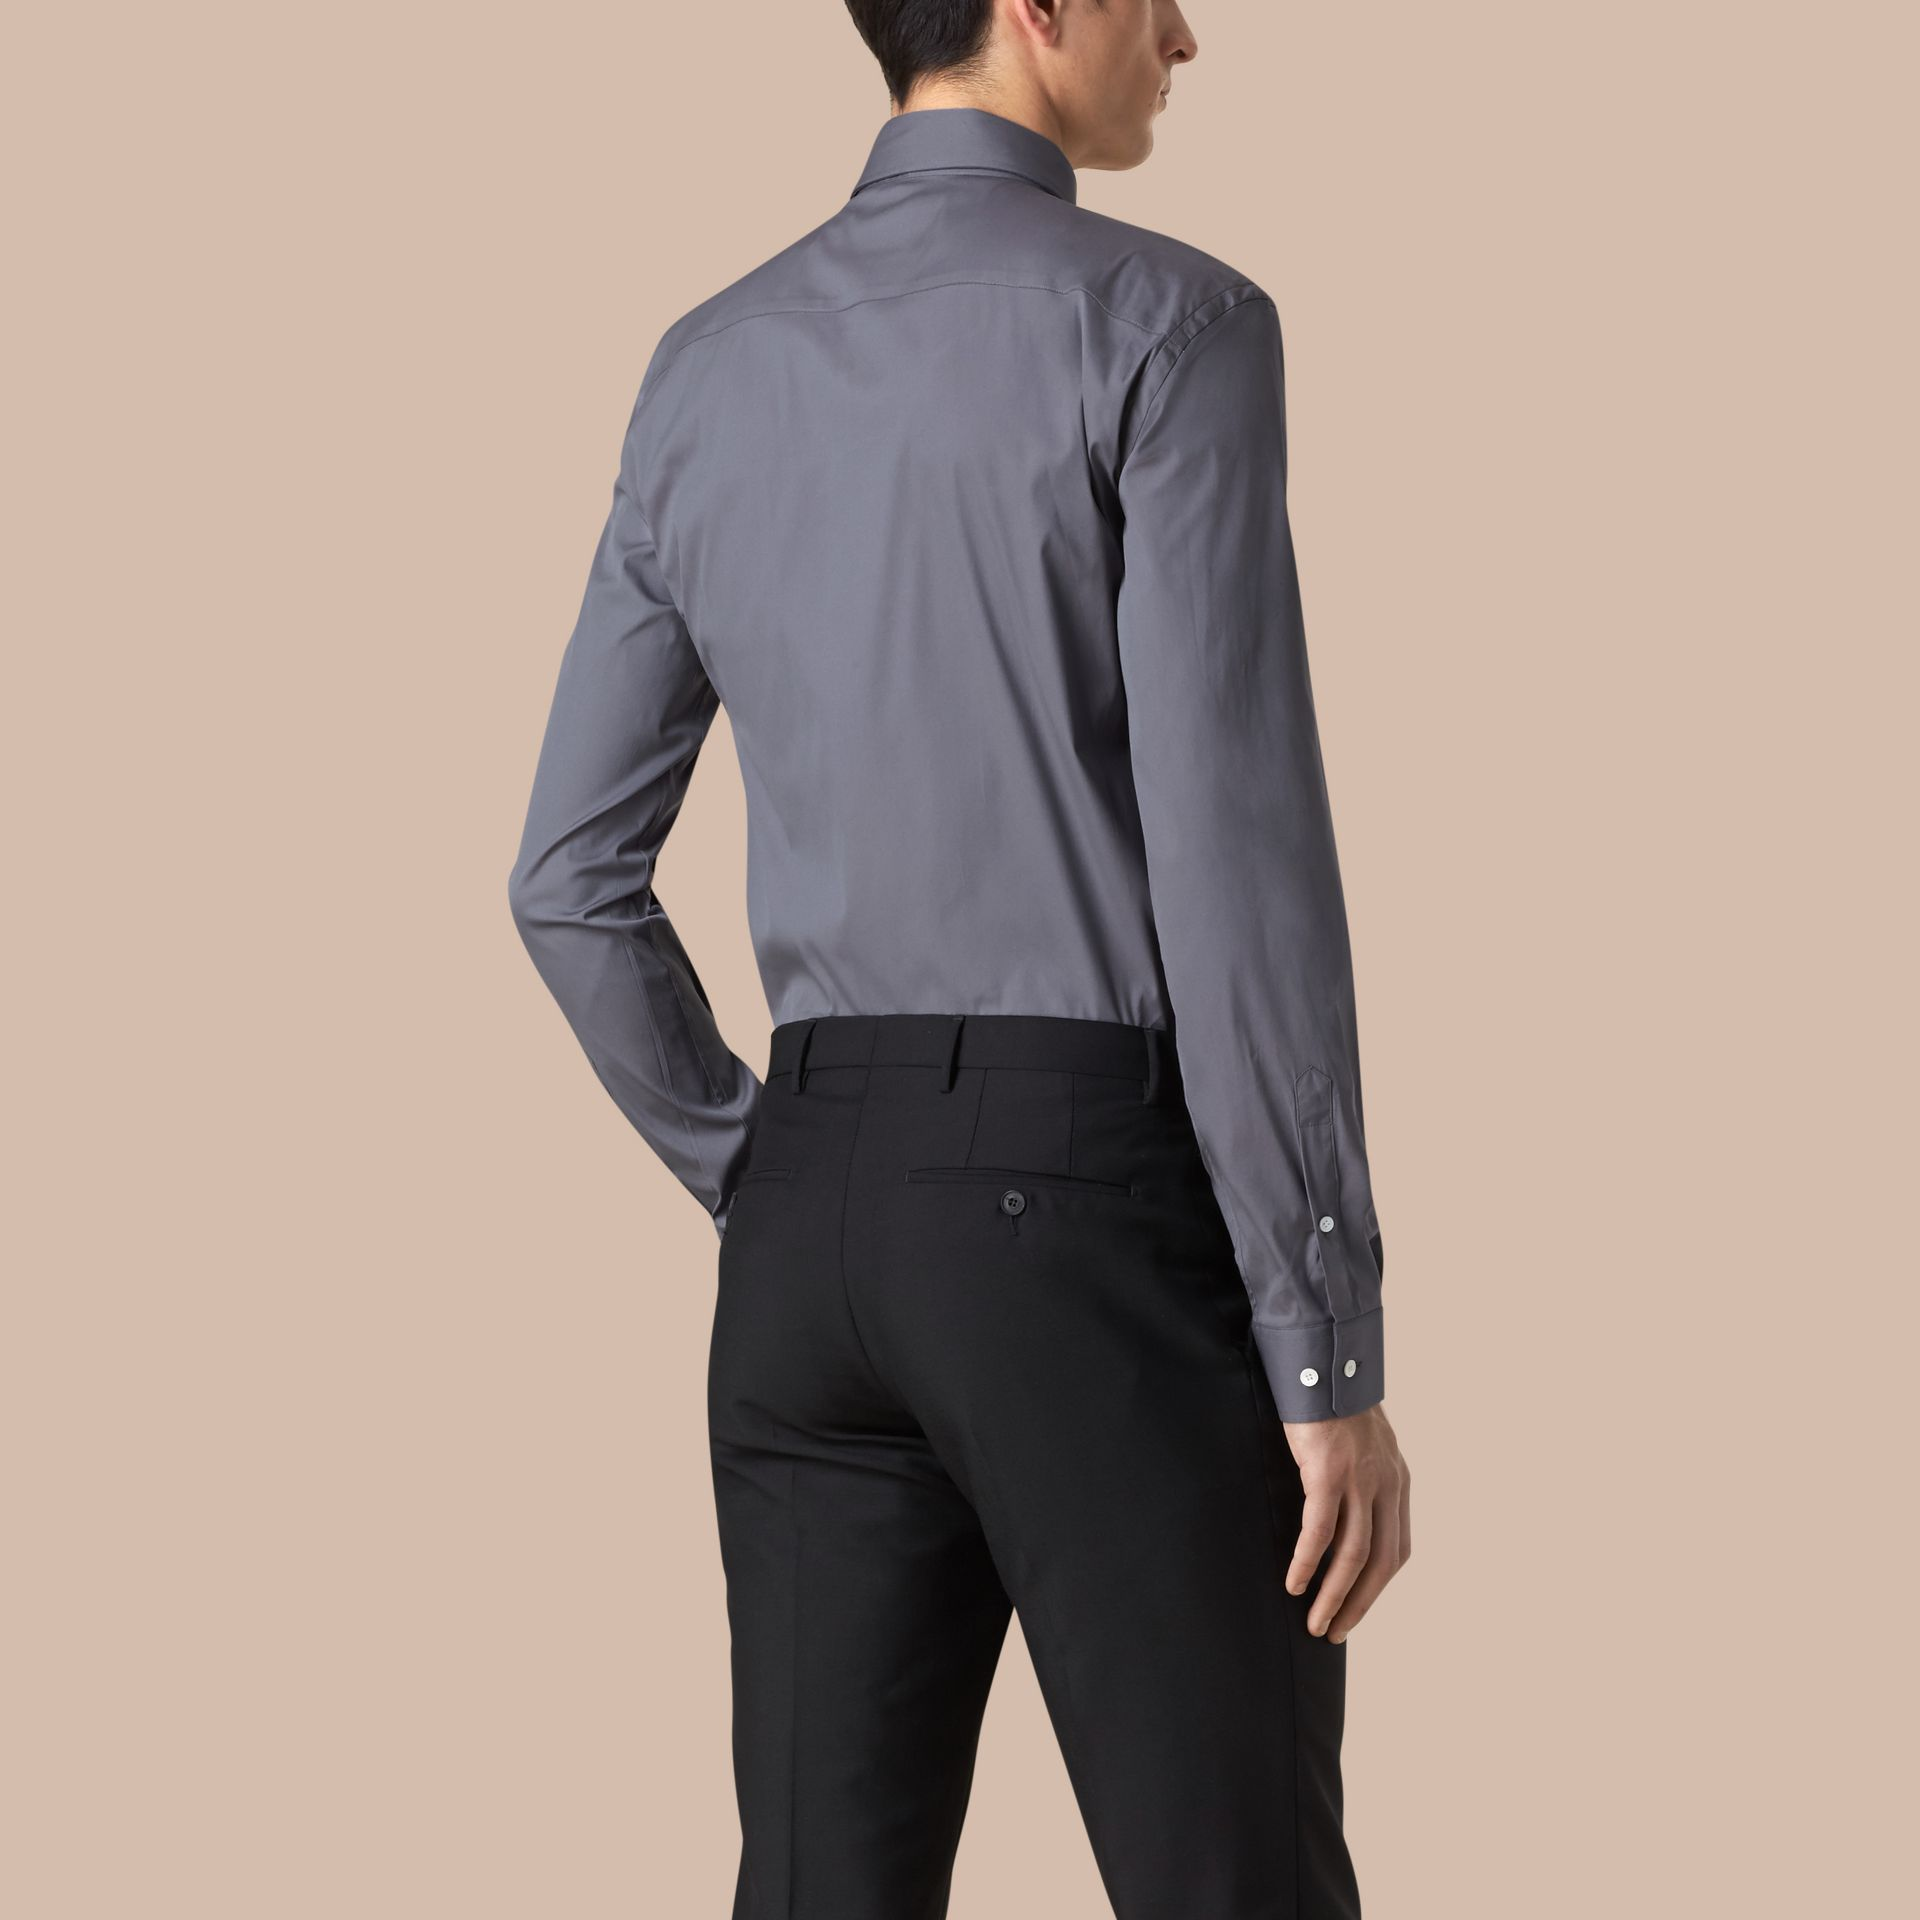 City grey Modern Fit Stretch Cotton Shirt City Grey - gallery image 3